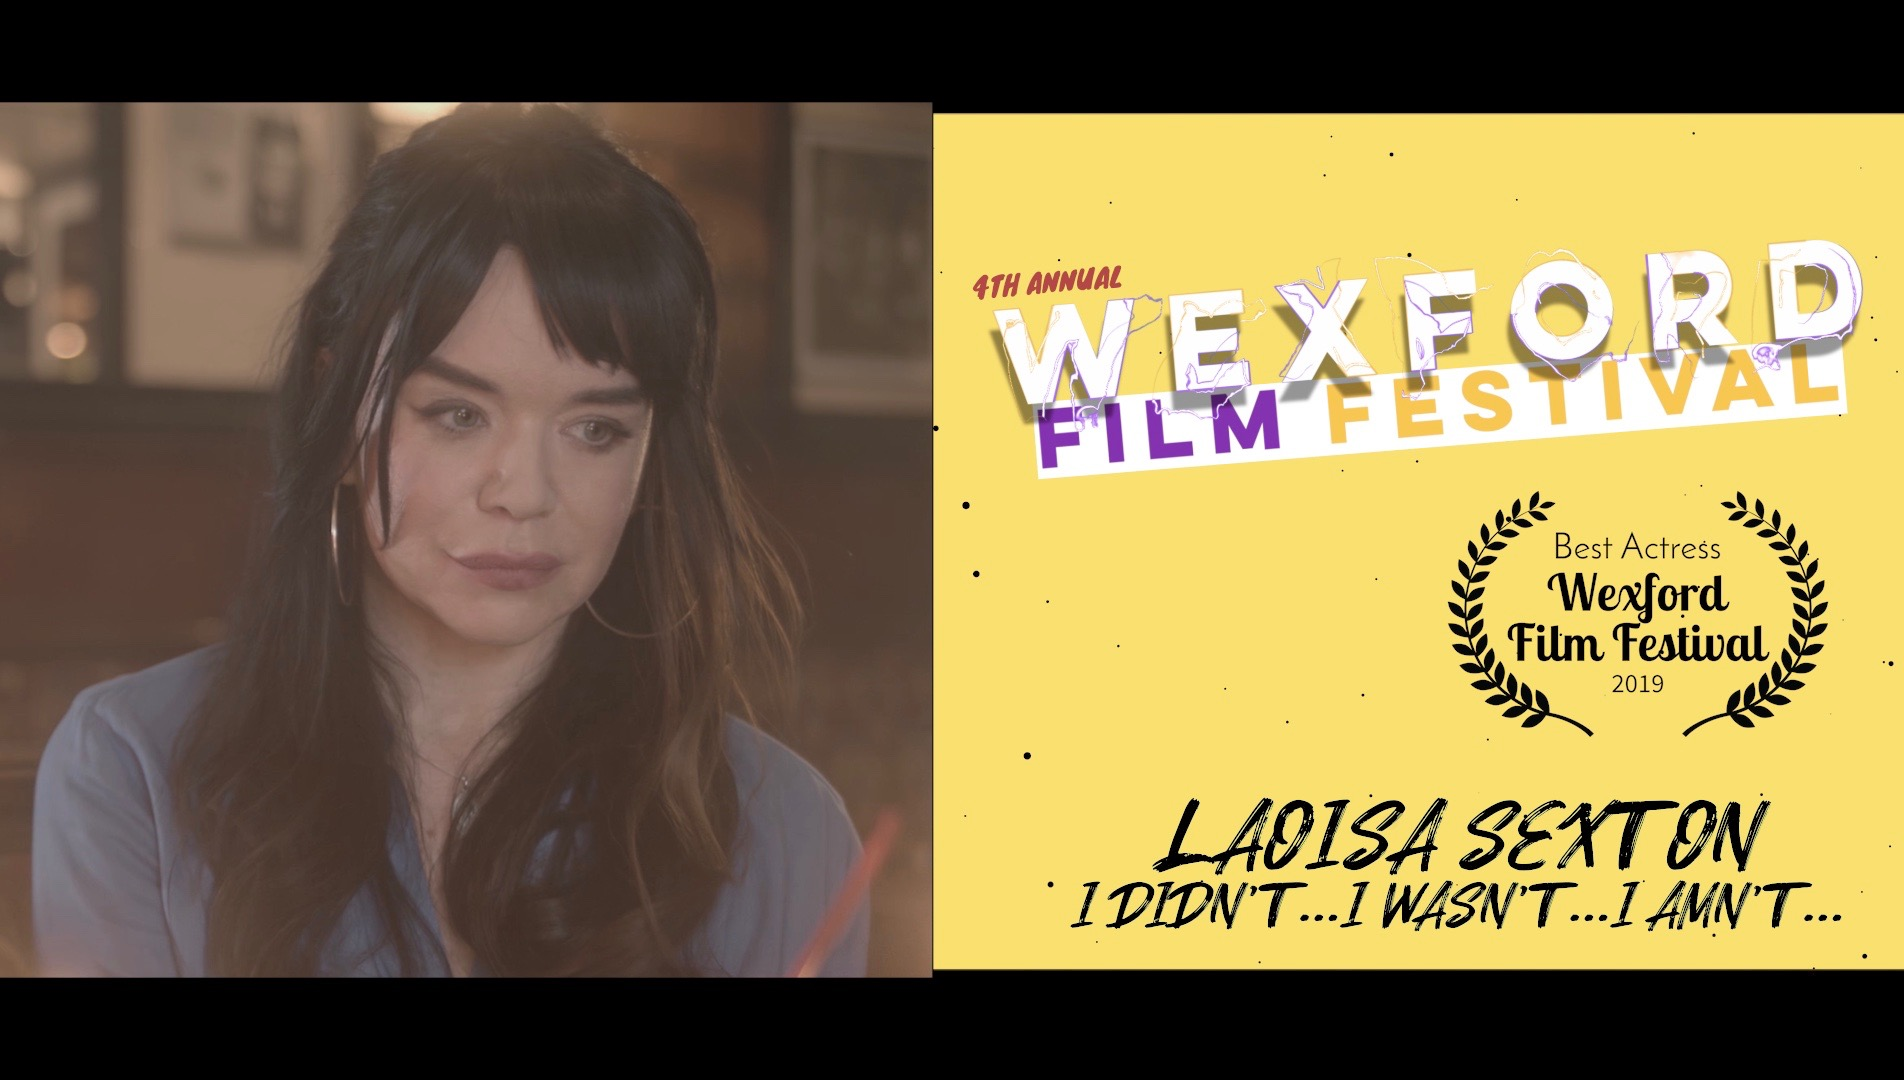 Winner of the  Best Actress Awa rd at this year's  Wexford Film Festival  Laoisa Sexton for  I Didn't…I Wasn't…I Amn't     (an un-romanctic comedy)